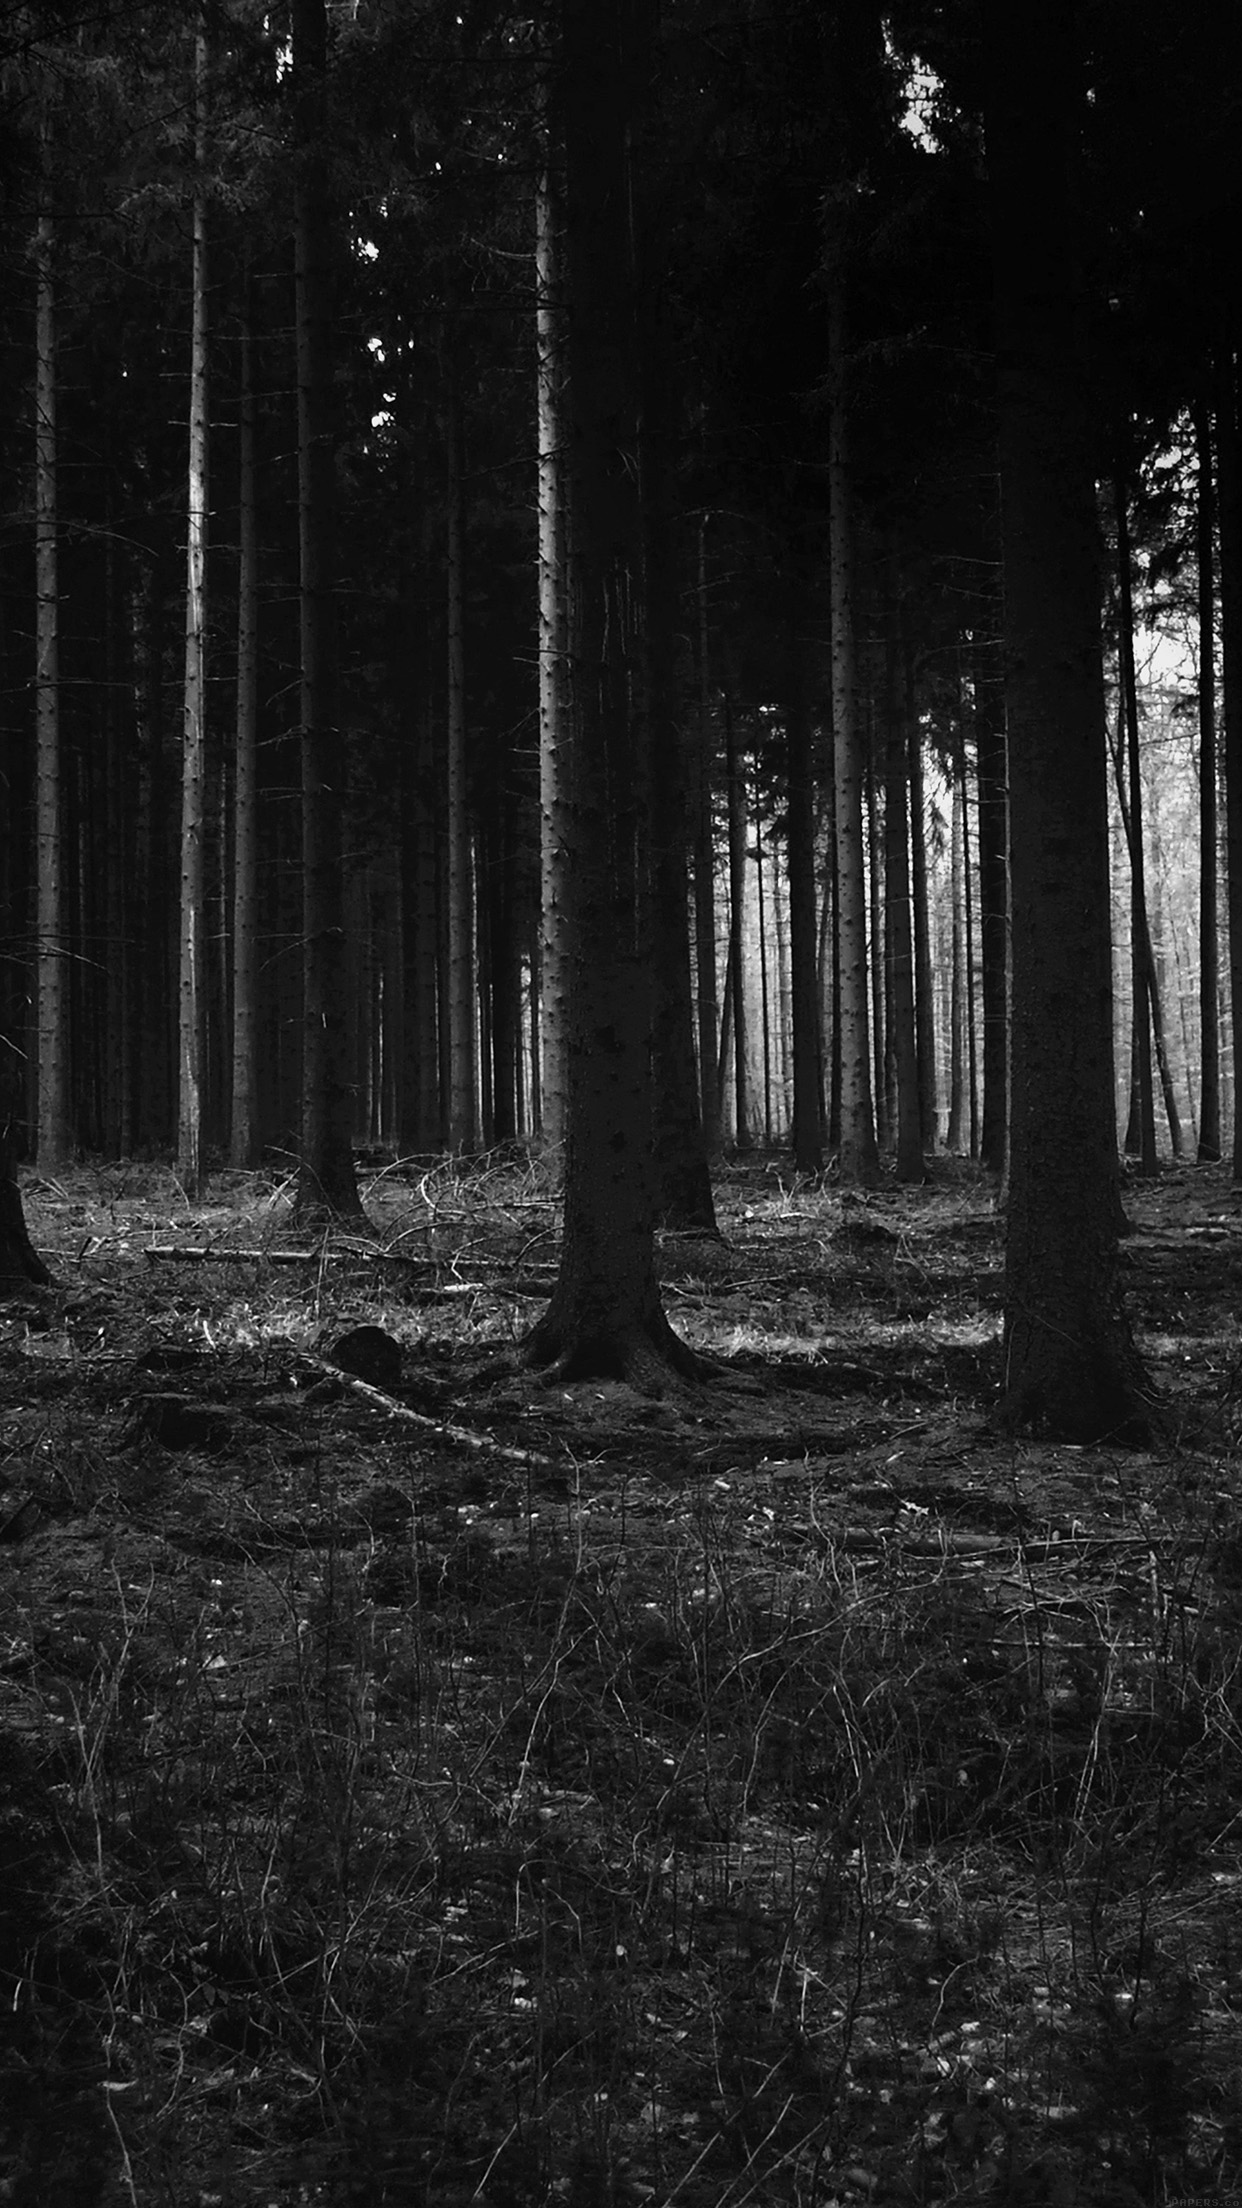 mj53-forest-dark-scary-night-trees-nature - Papers.co